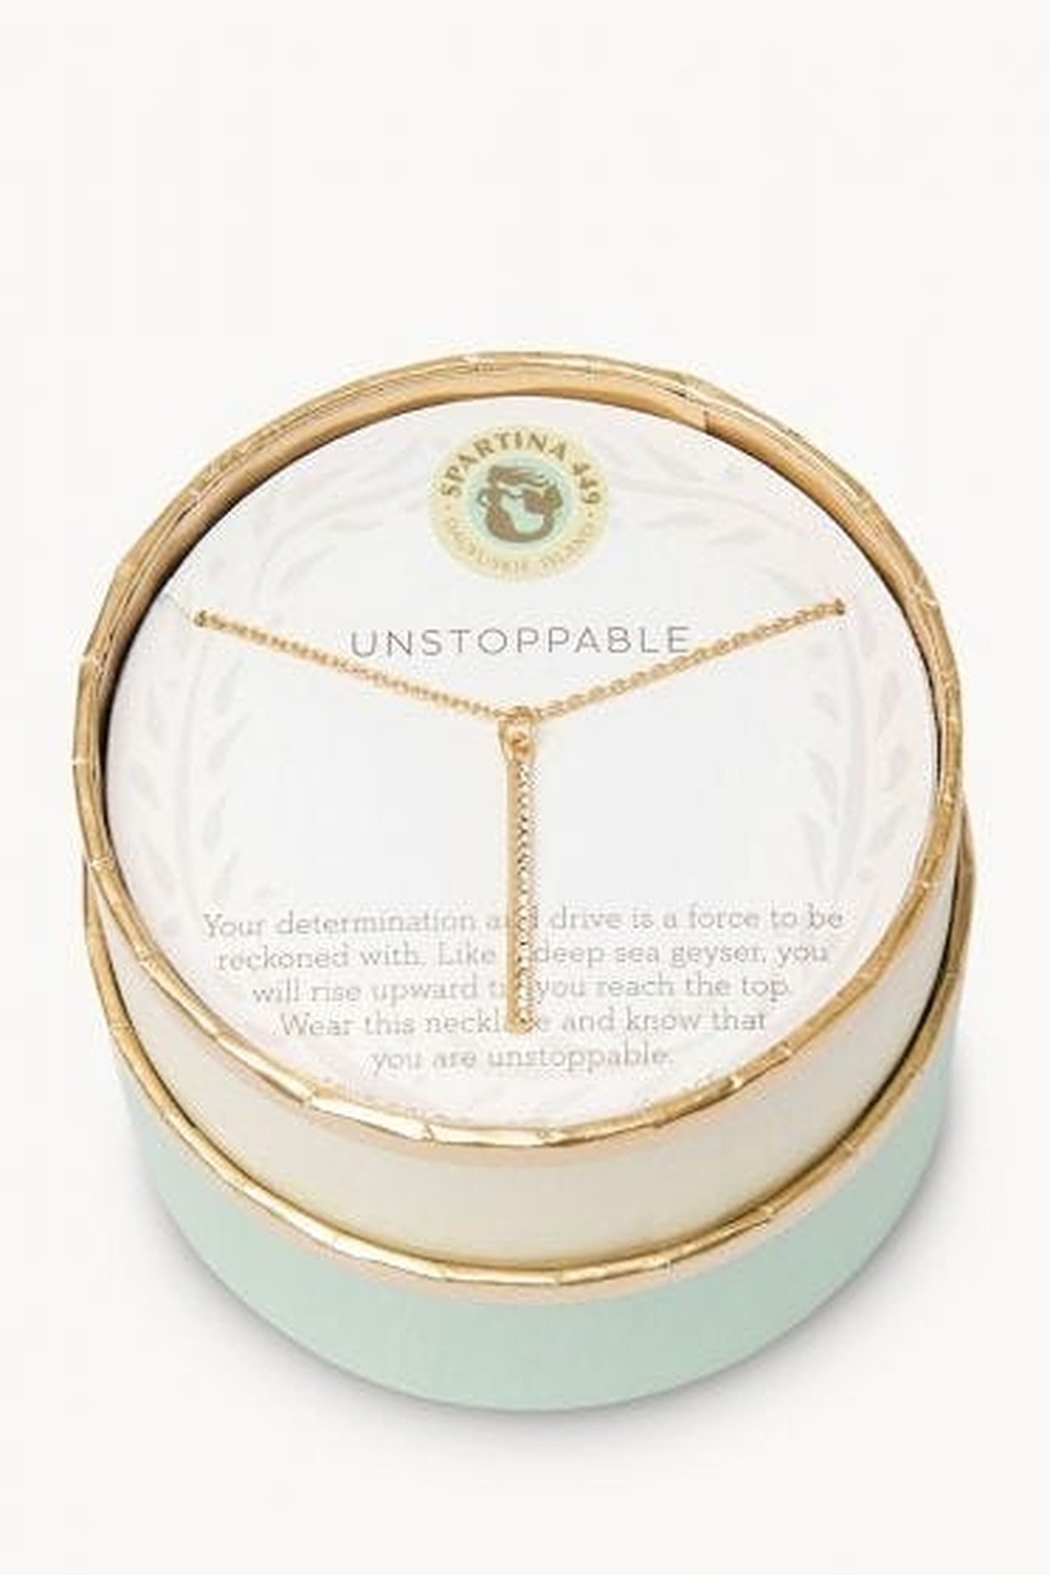 Spartina 449 Unstoppable Necklace 18' - Main Image